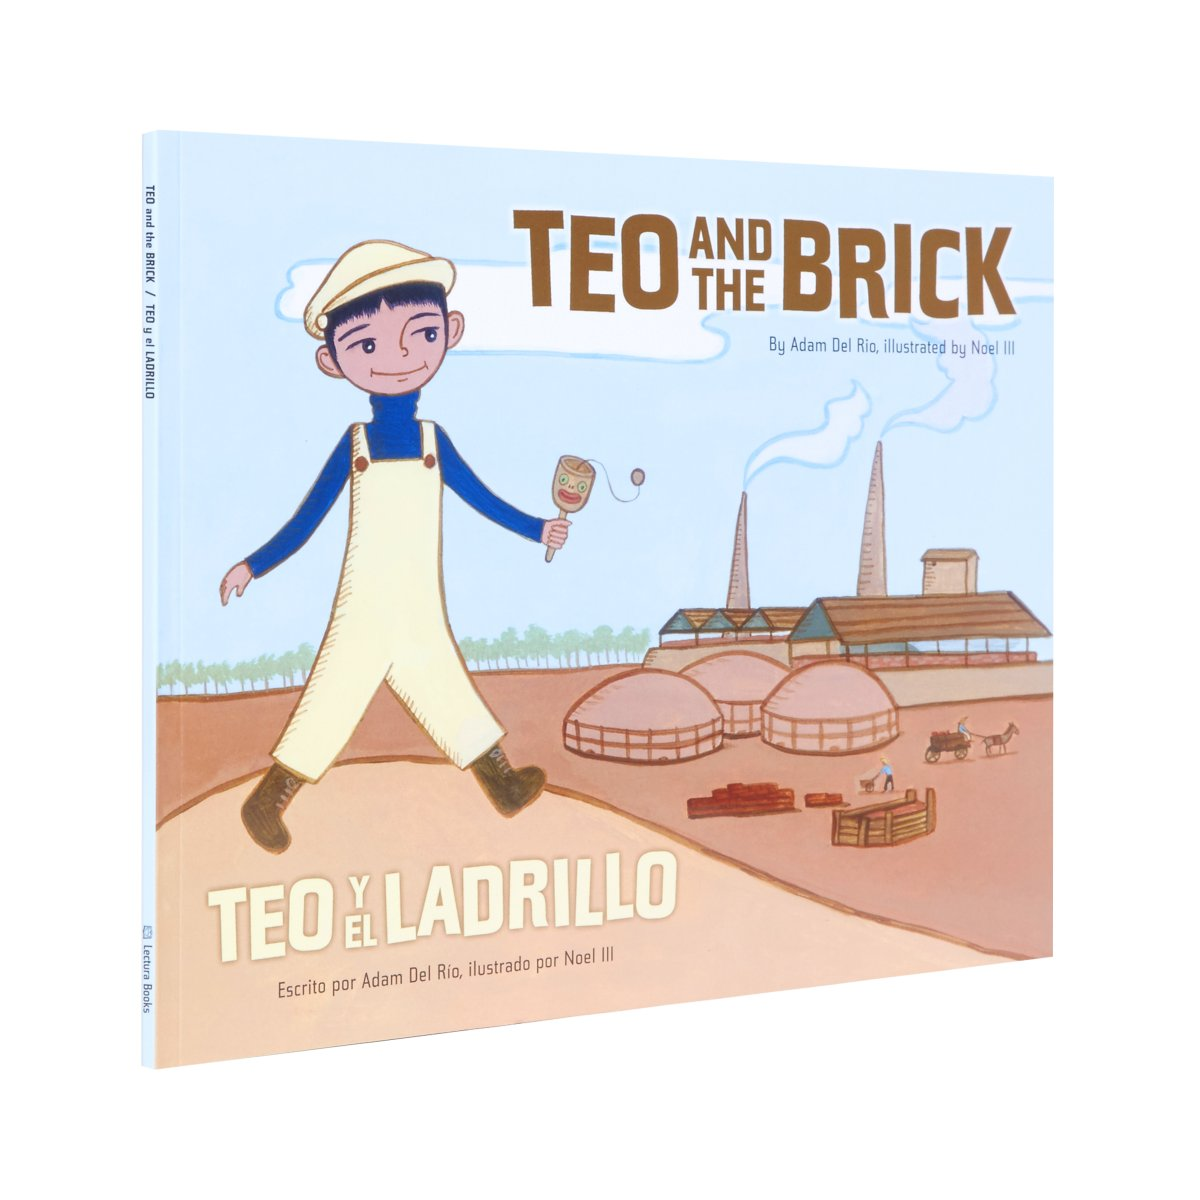 A touching story about a young son and his father, a hard-working brick maker.  https://bit.ly/2YXlbaA #Bilingualbooks #KidLit #FathersDay @NABEorg #equityandinclusionpic.twitter.com/HPBm3Zrya3